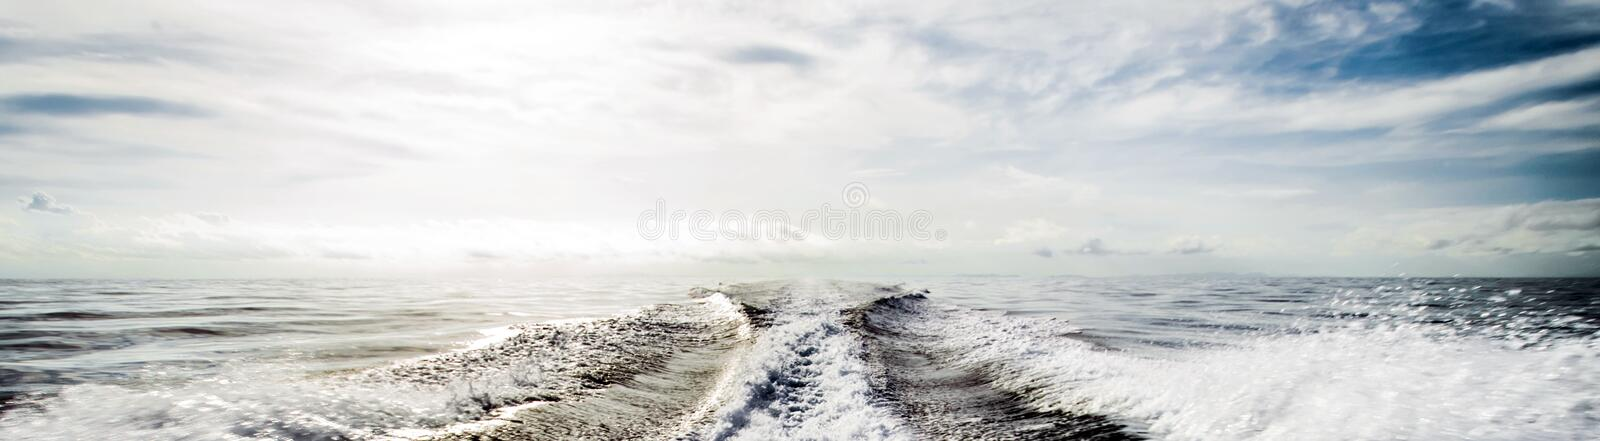 Motor boat water traces in open caribbean sea royalty free stock image